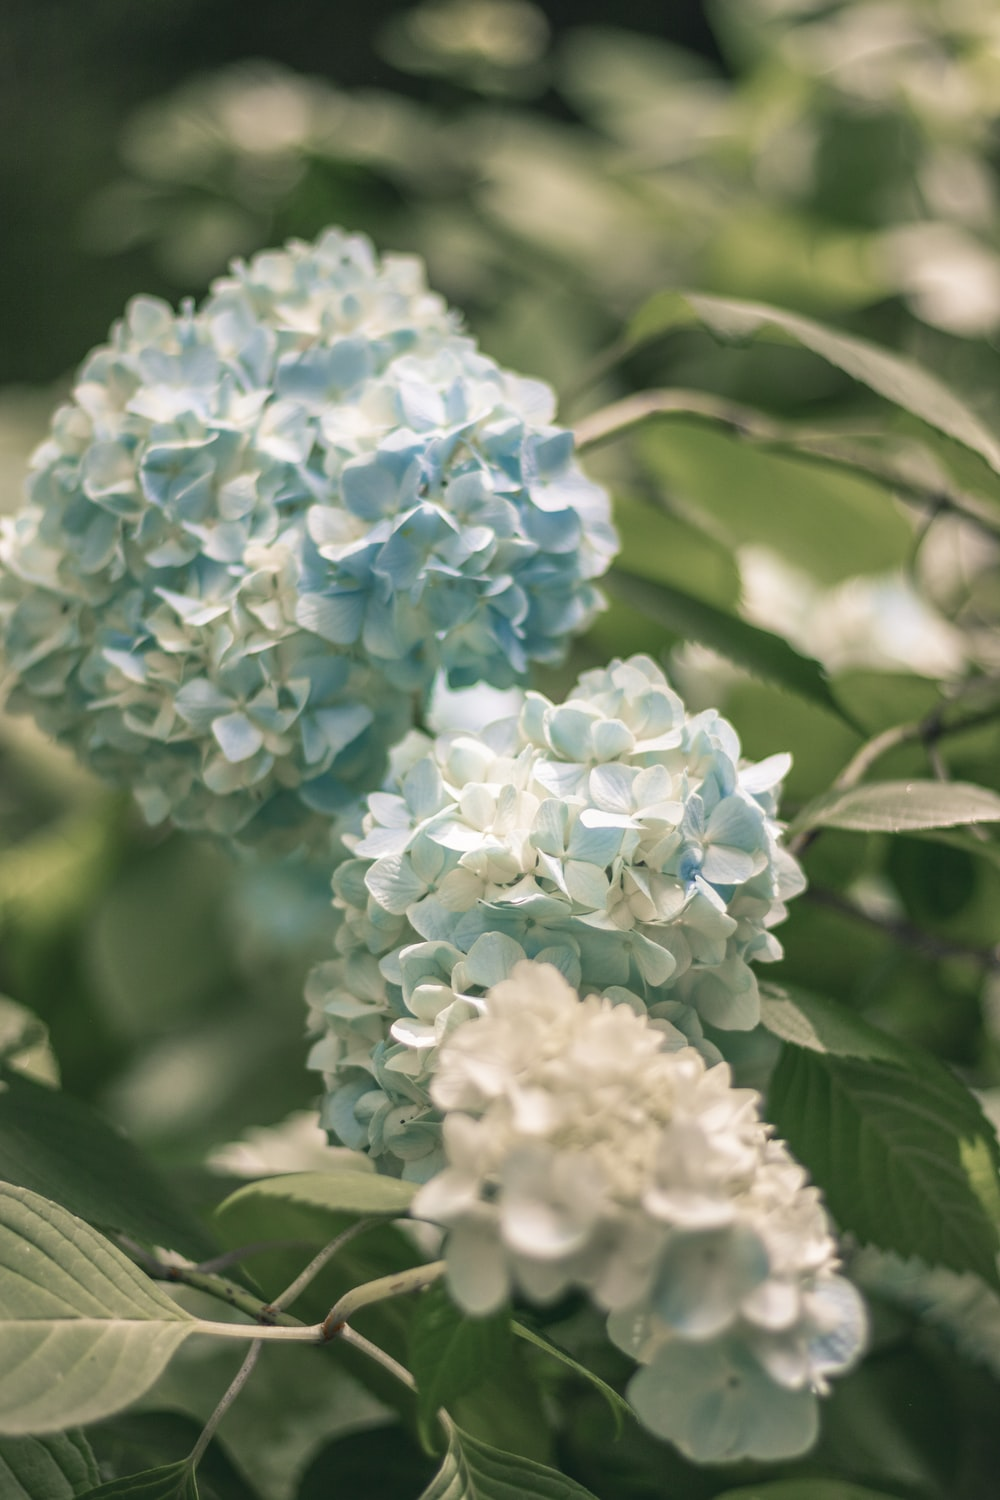 white and blue flower in close up photography